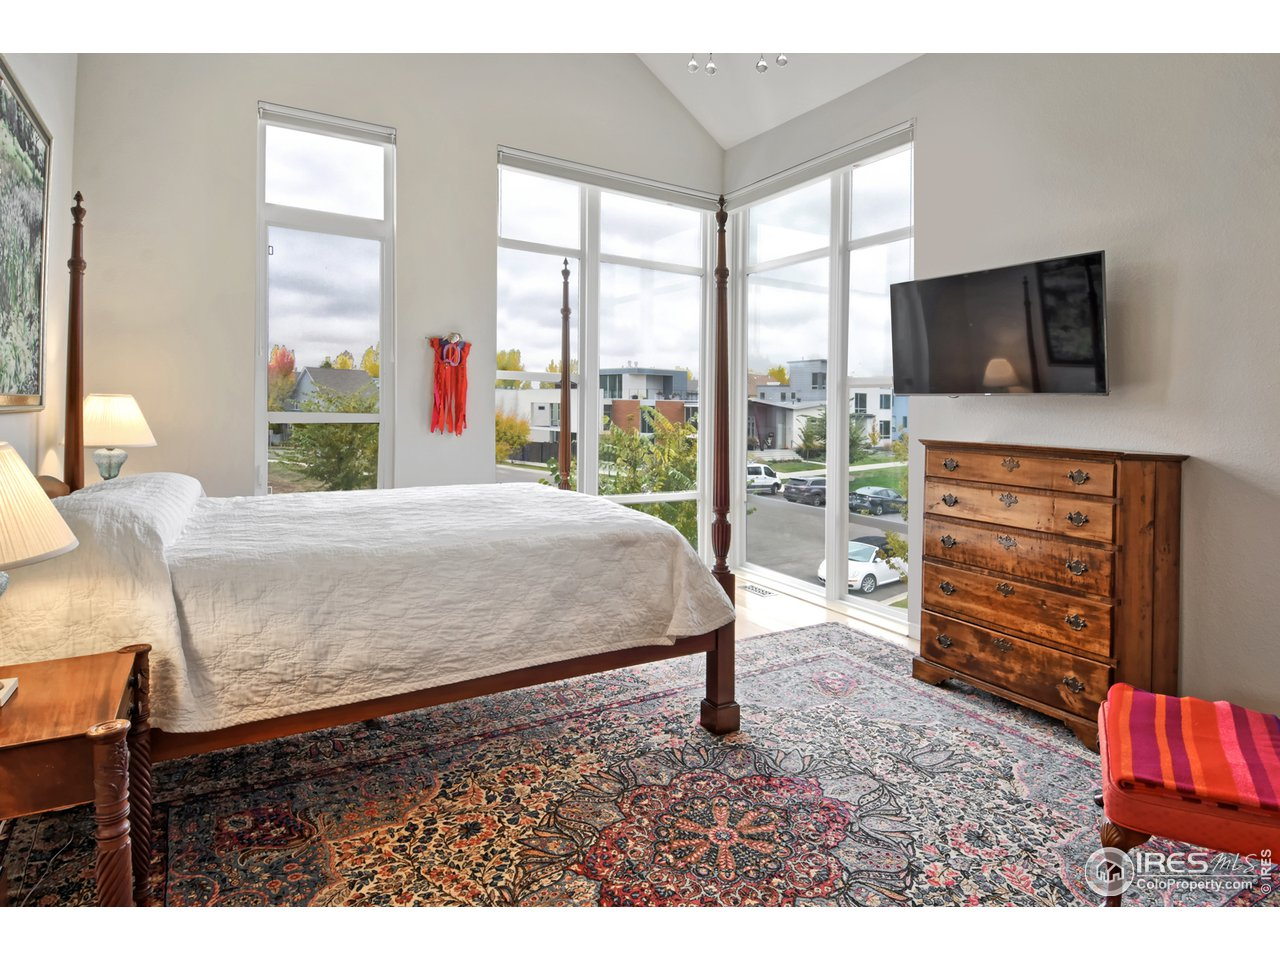 Master Suite with Views for Miles